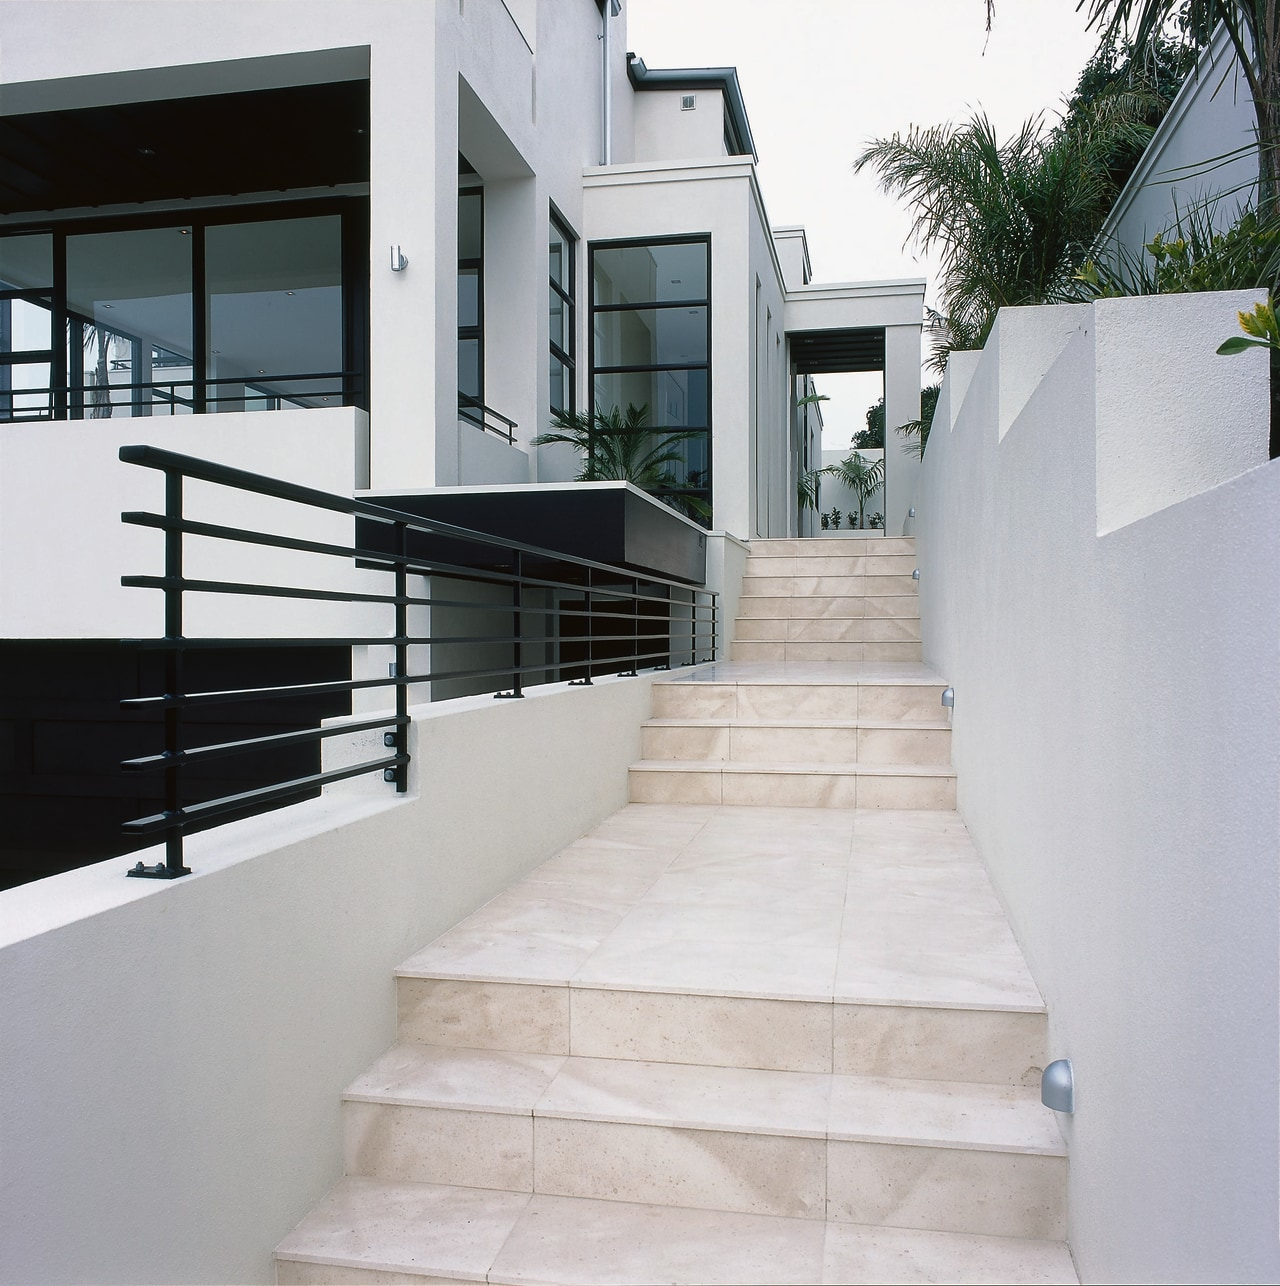 A stairway featuring coffee-coloured limestone tiles. The stairway apartment, architecture, handrail, home, house, stairs, gray